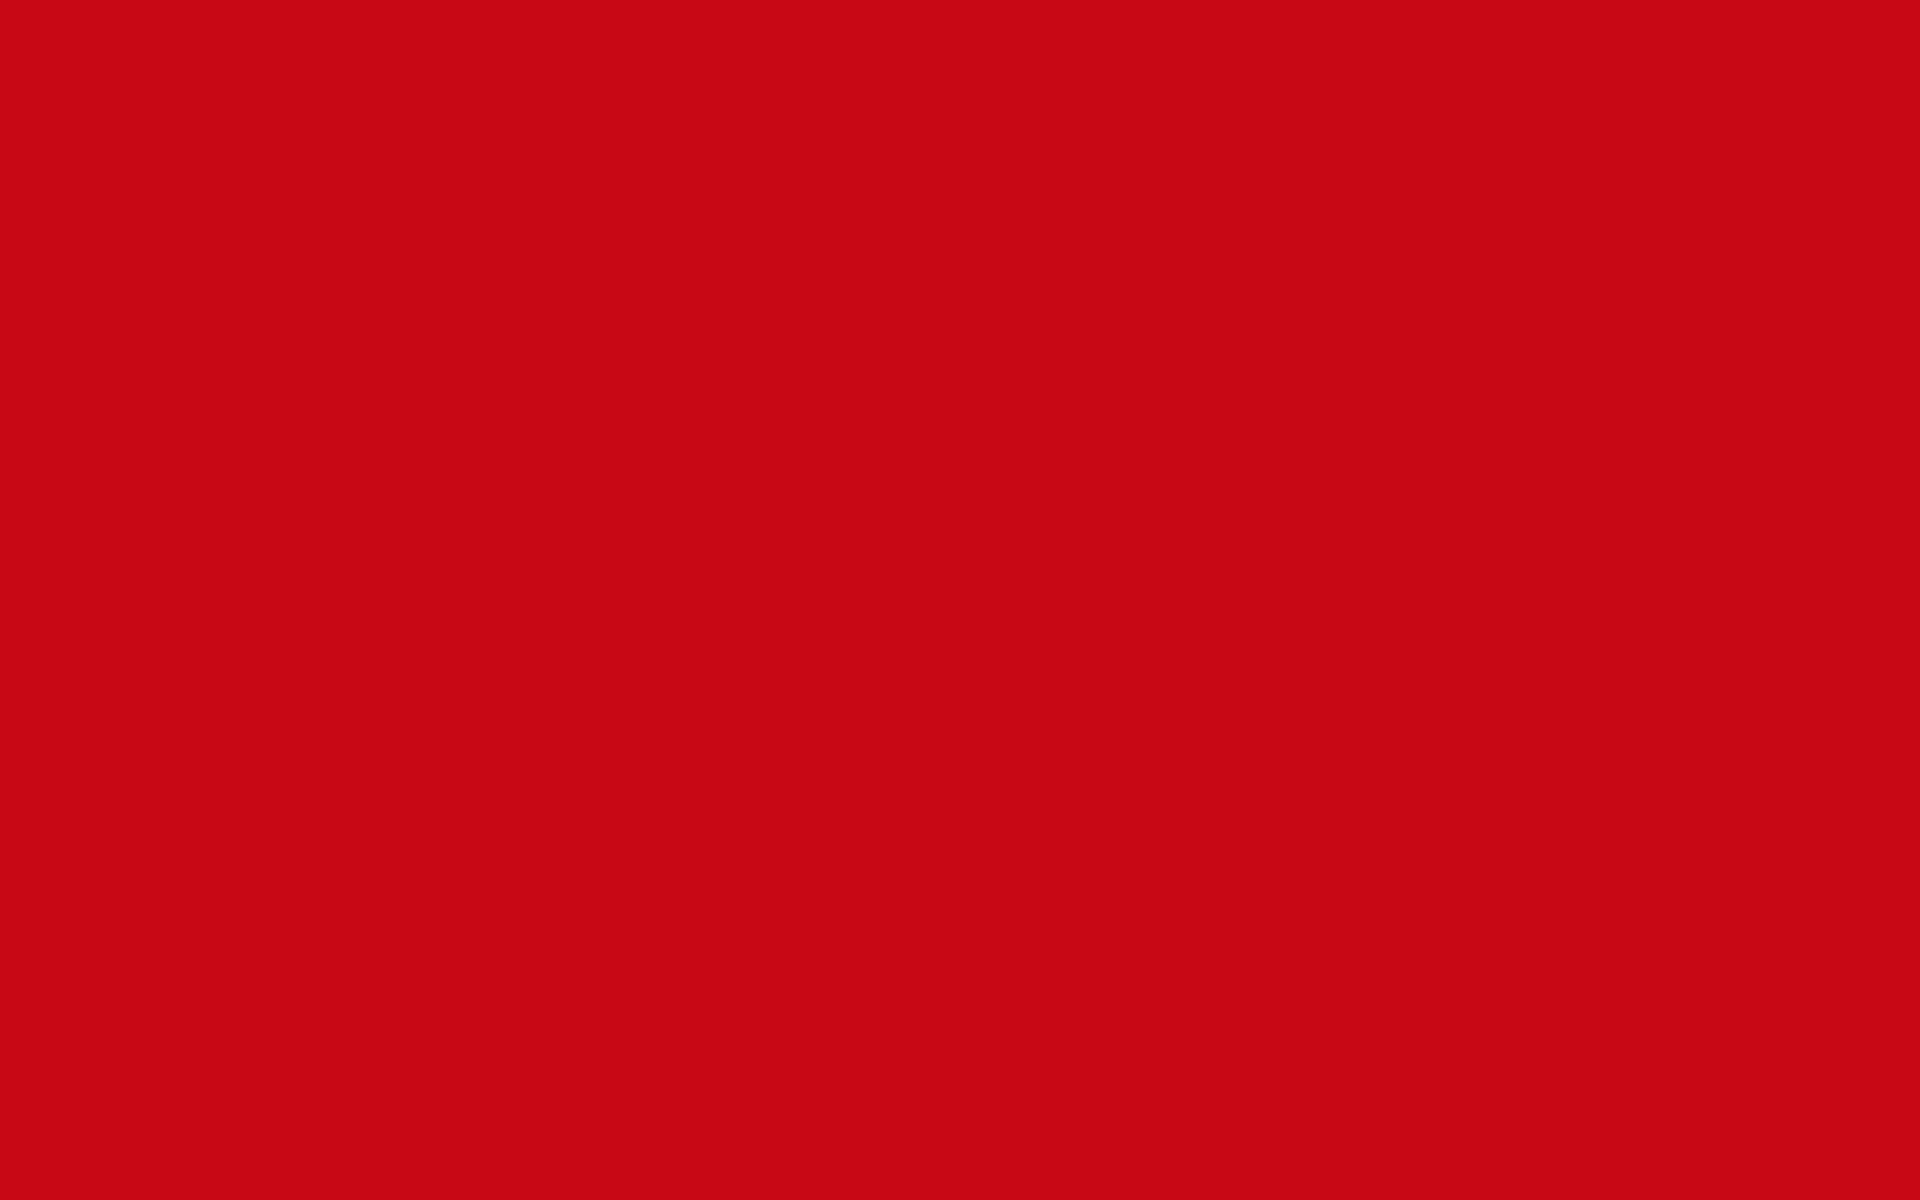 1920x1200 Venetian Red Solid Color Background